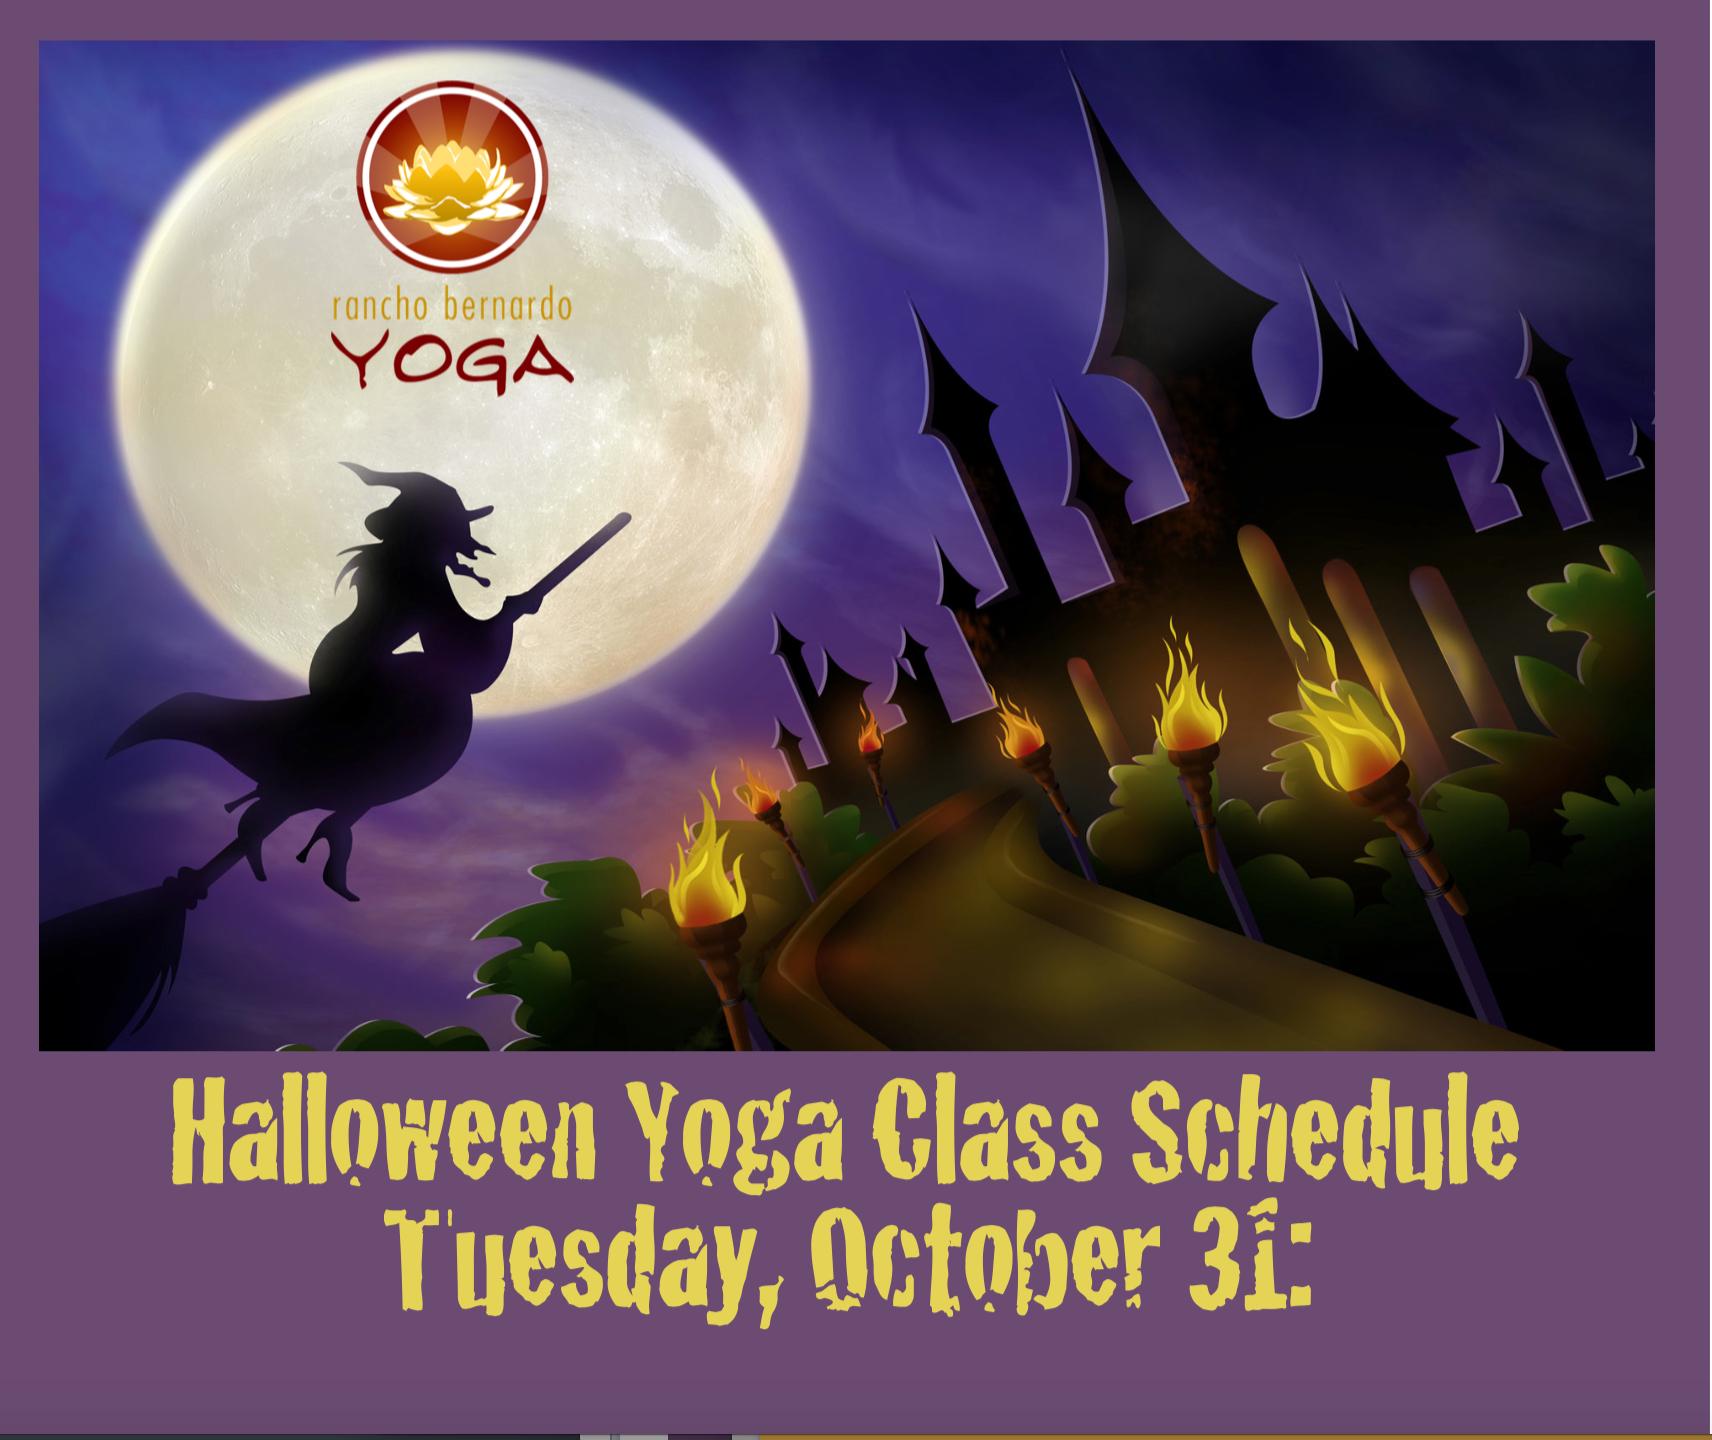 halloween class schedule tuesday oct 31 rancho bernando yoga